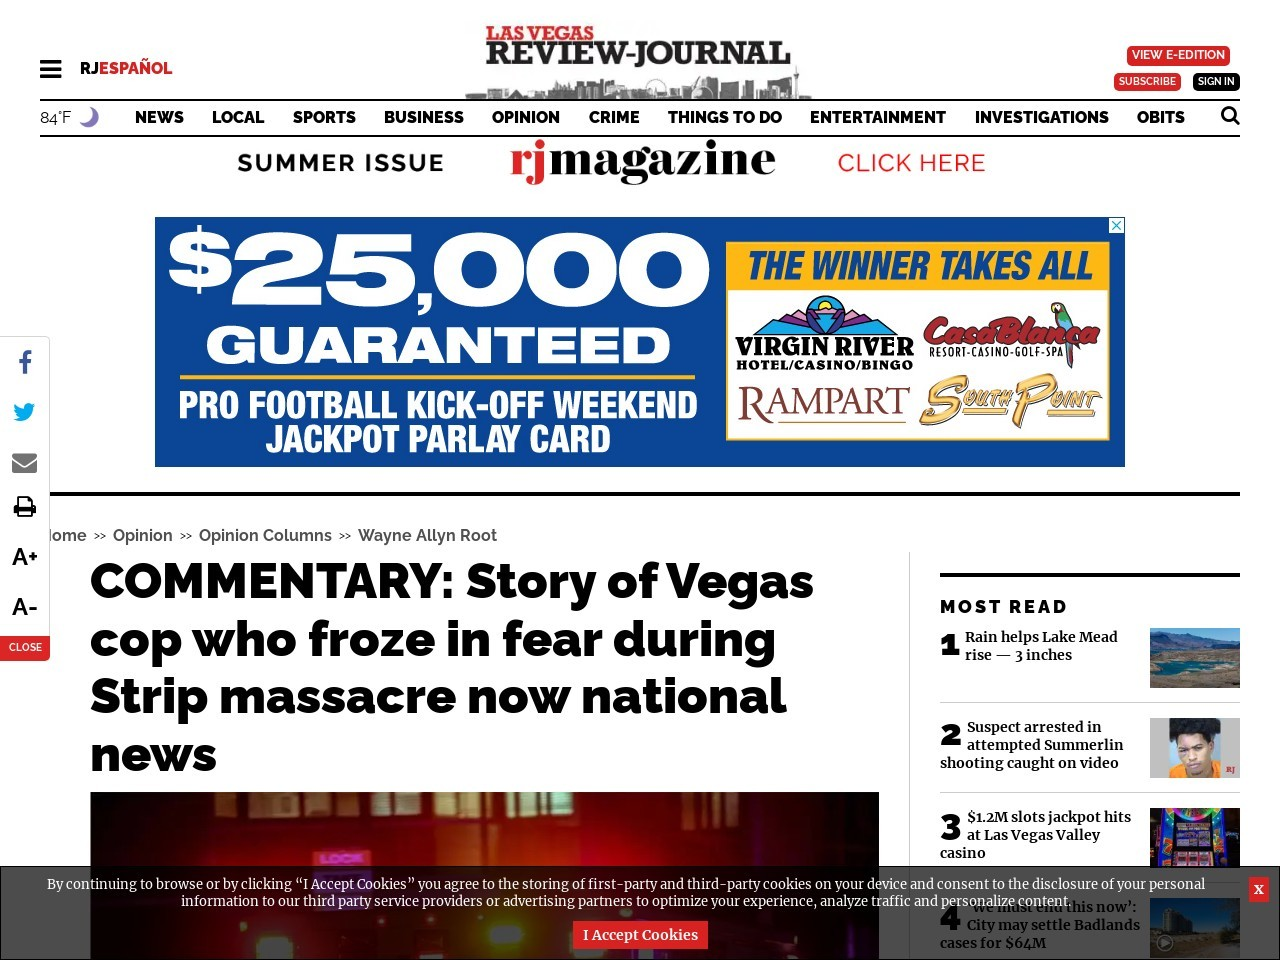 COMMENTARY: Story of Vegas cop who froze in fear during Strip massacre now national news